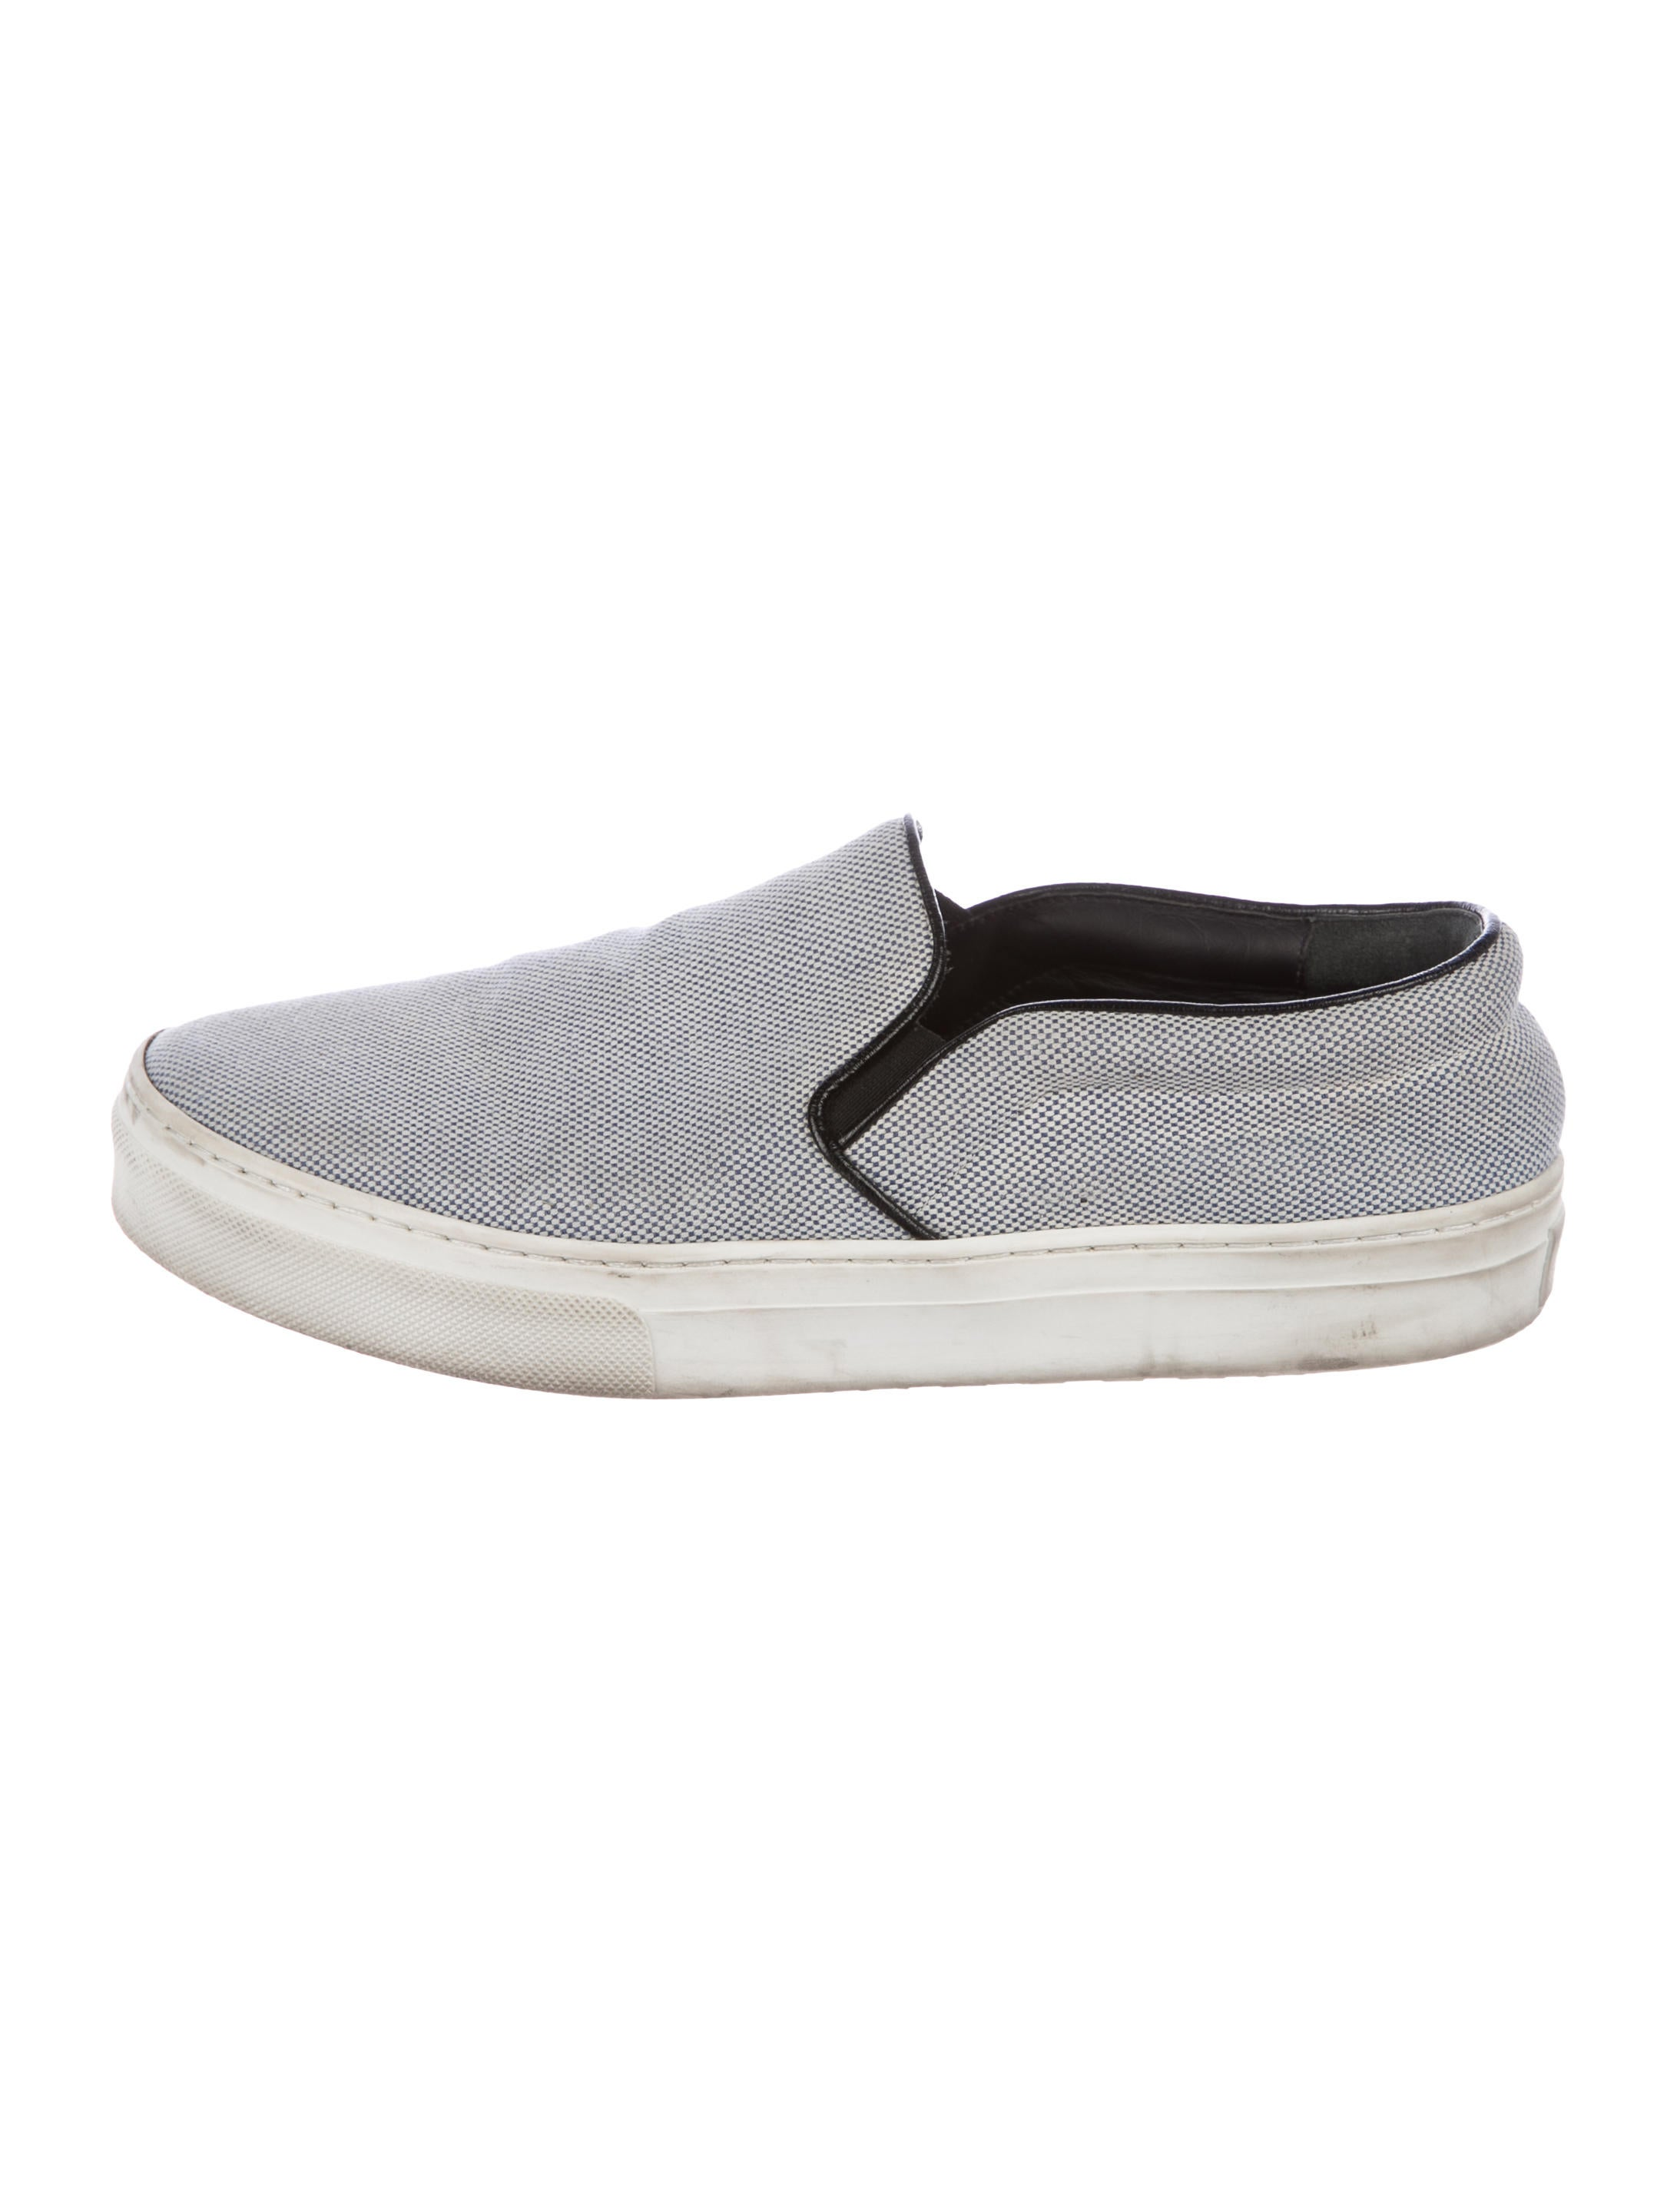 Céline Woven Slip-On Sneakers cheap low price c1IEkk